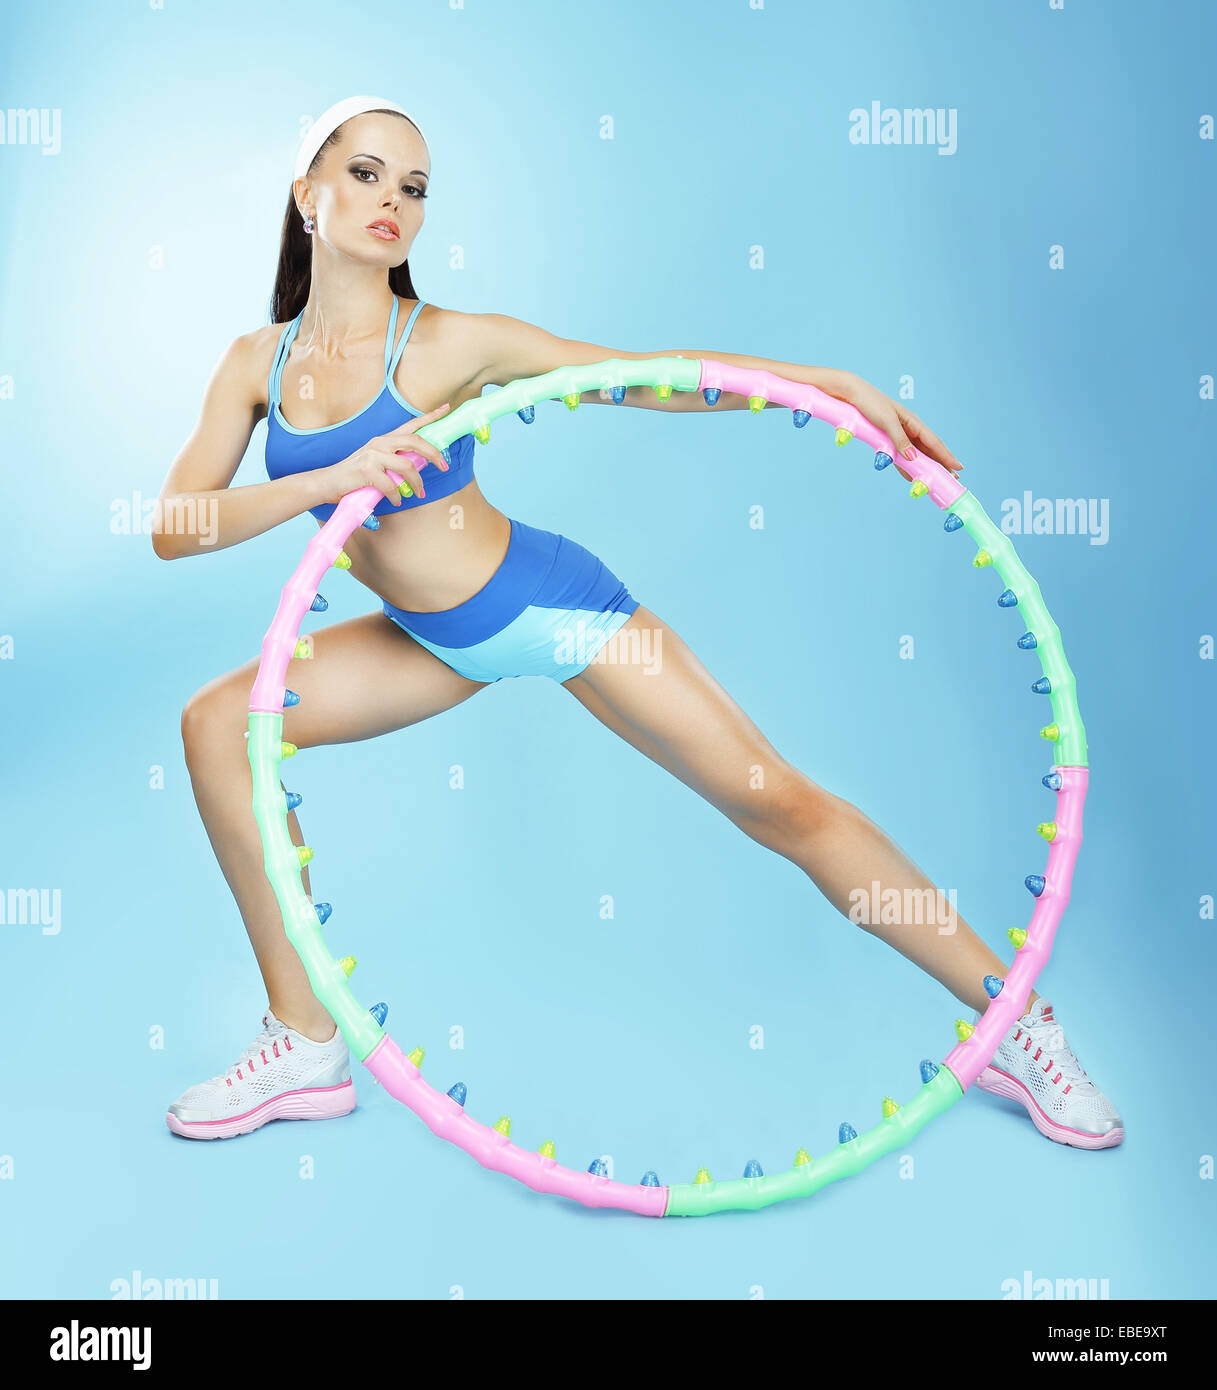 Gymnastics. Fit Woman with Hoop in Fitness Club - Stock Image